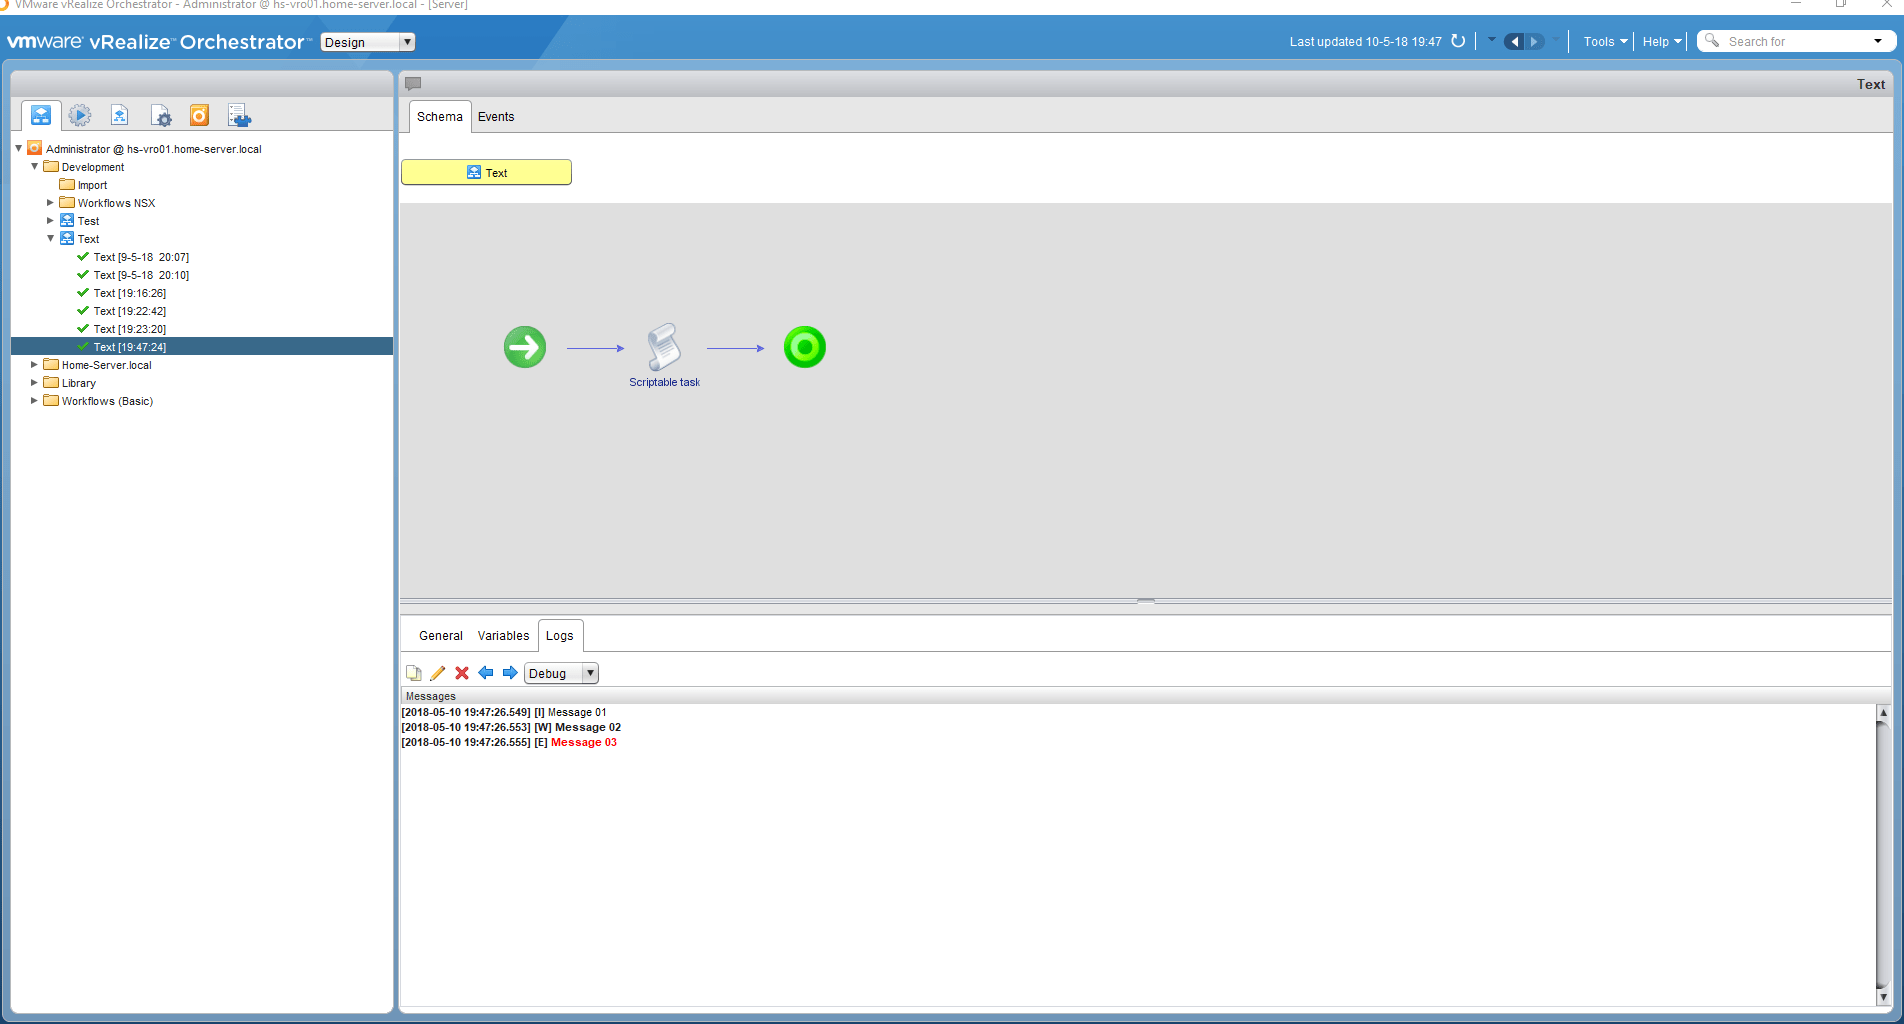 vRealize Orchestrator 7.4 - Output Working